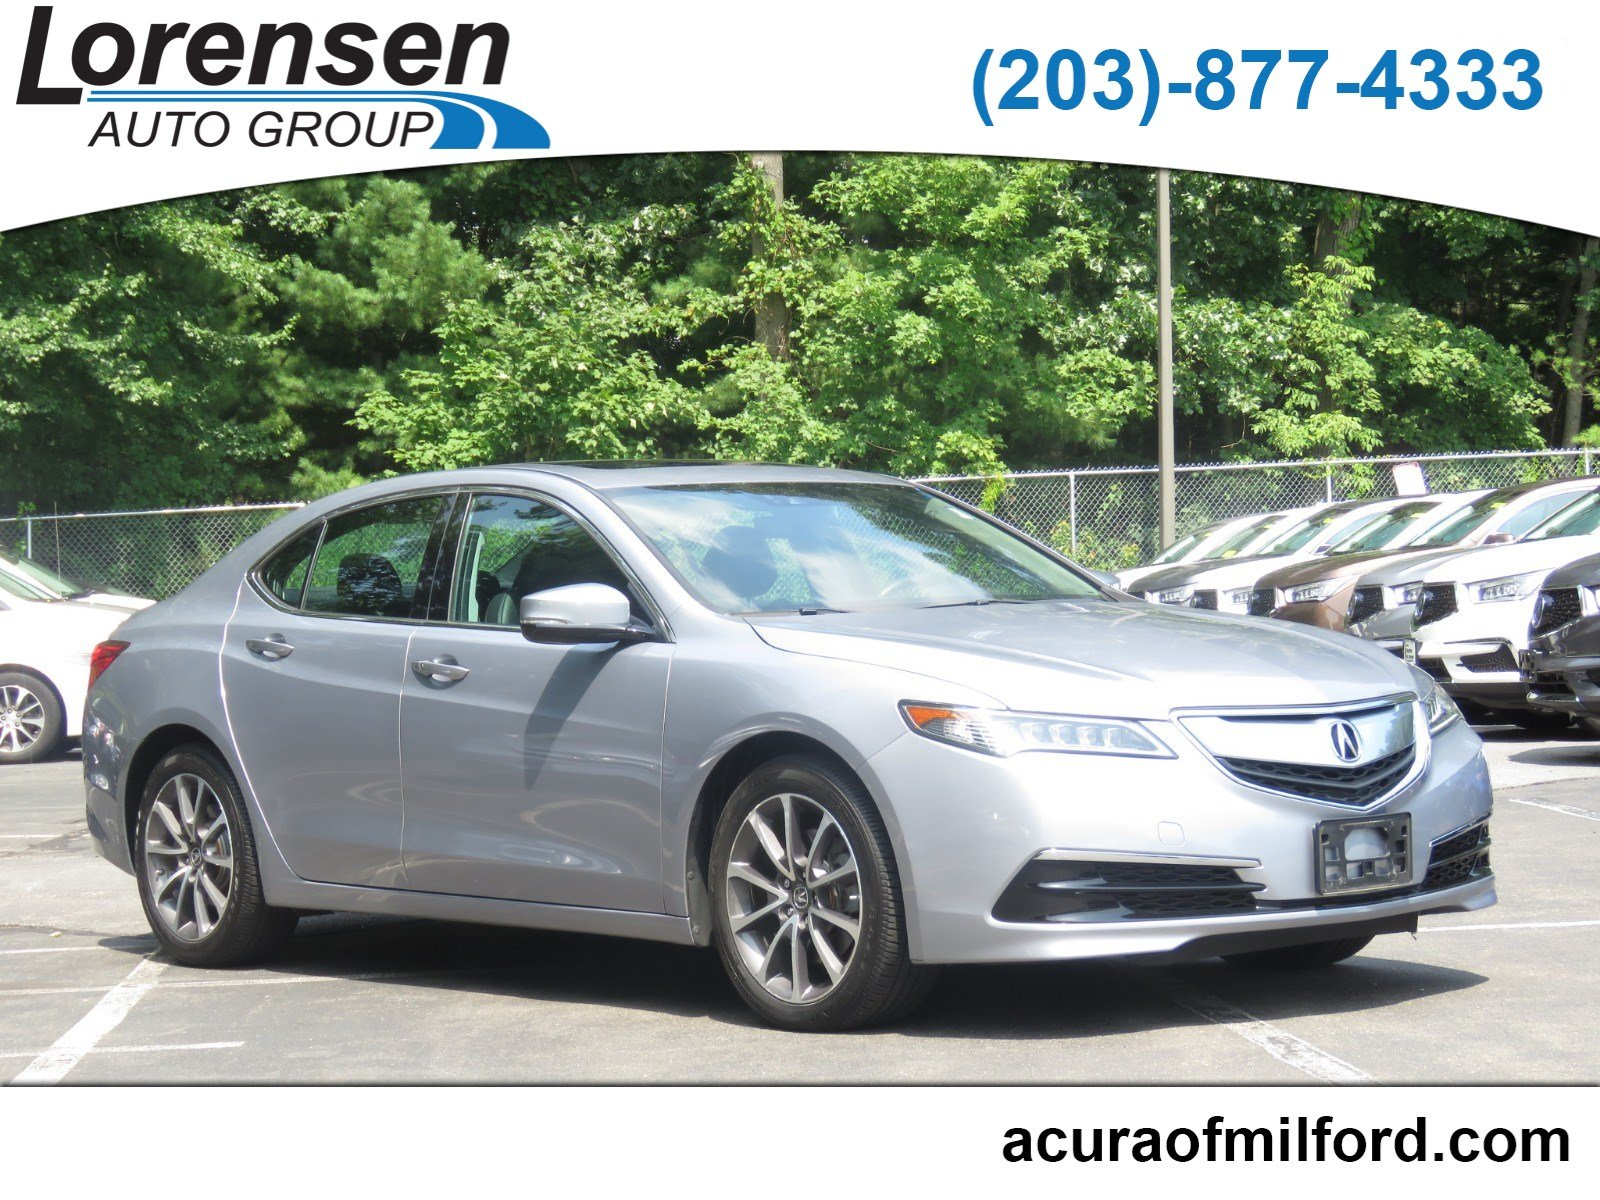 Certified Pre Owned 2015 Acura TLX V6 Tech 4dr Car in Watertown